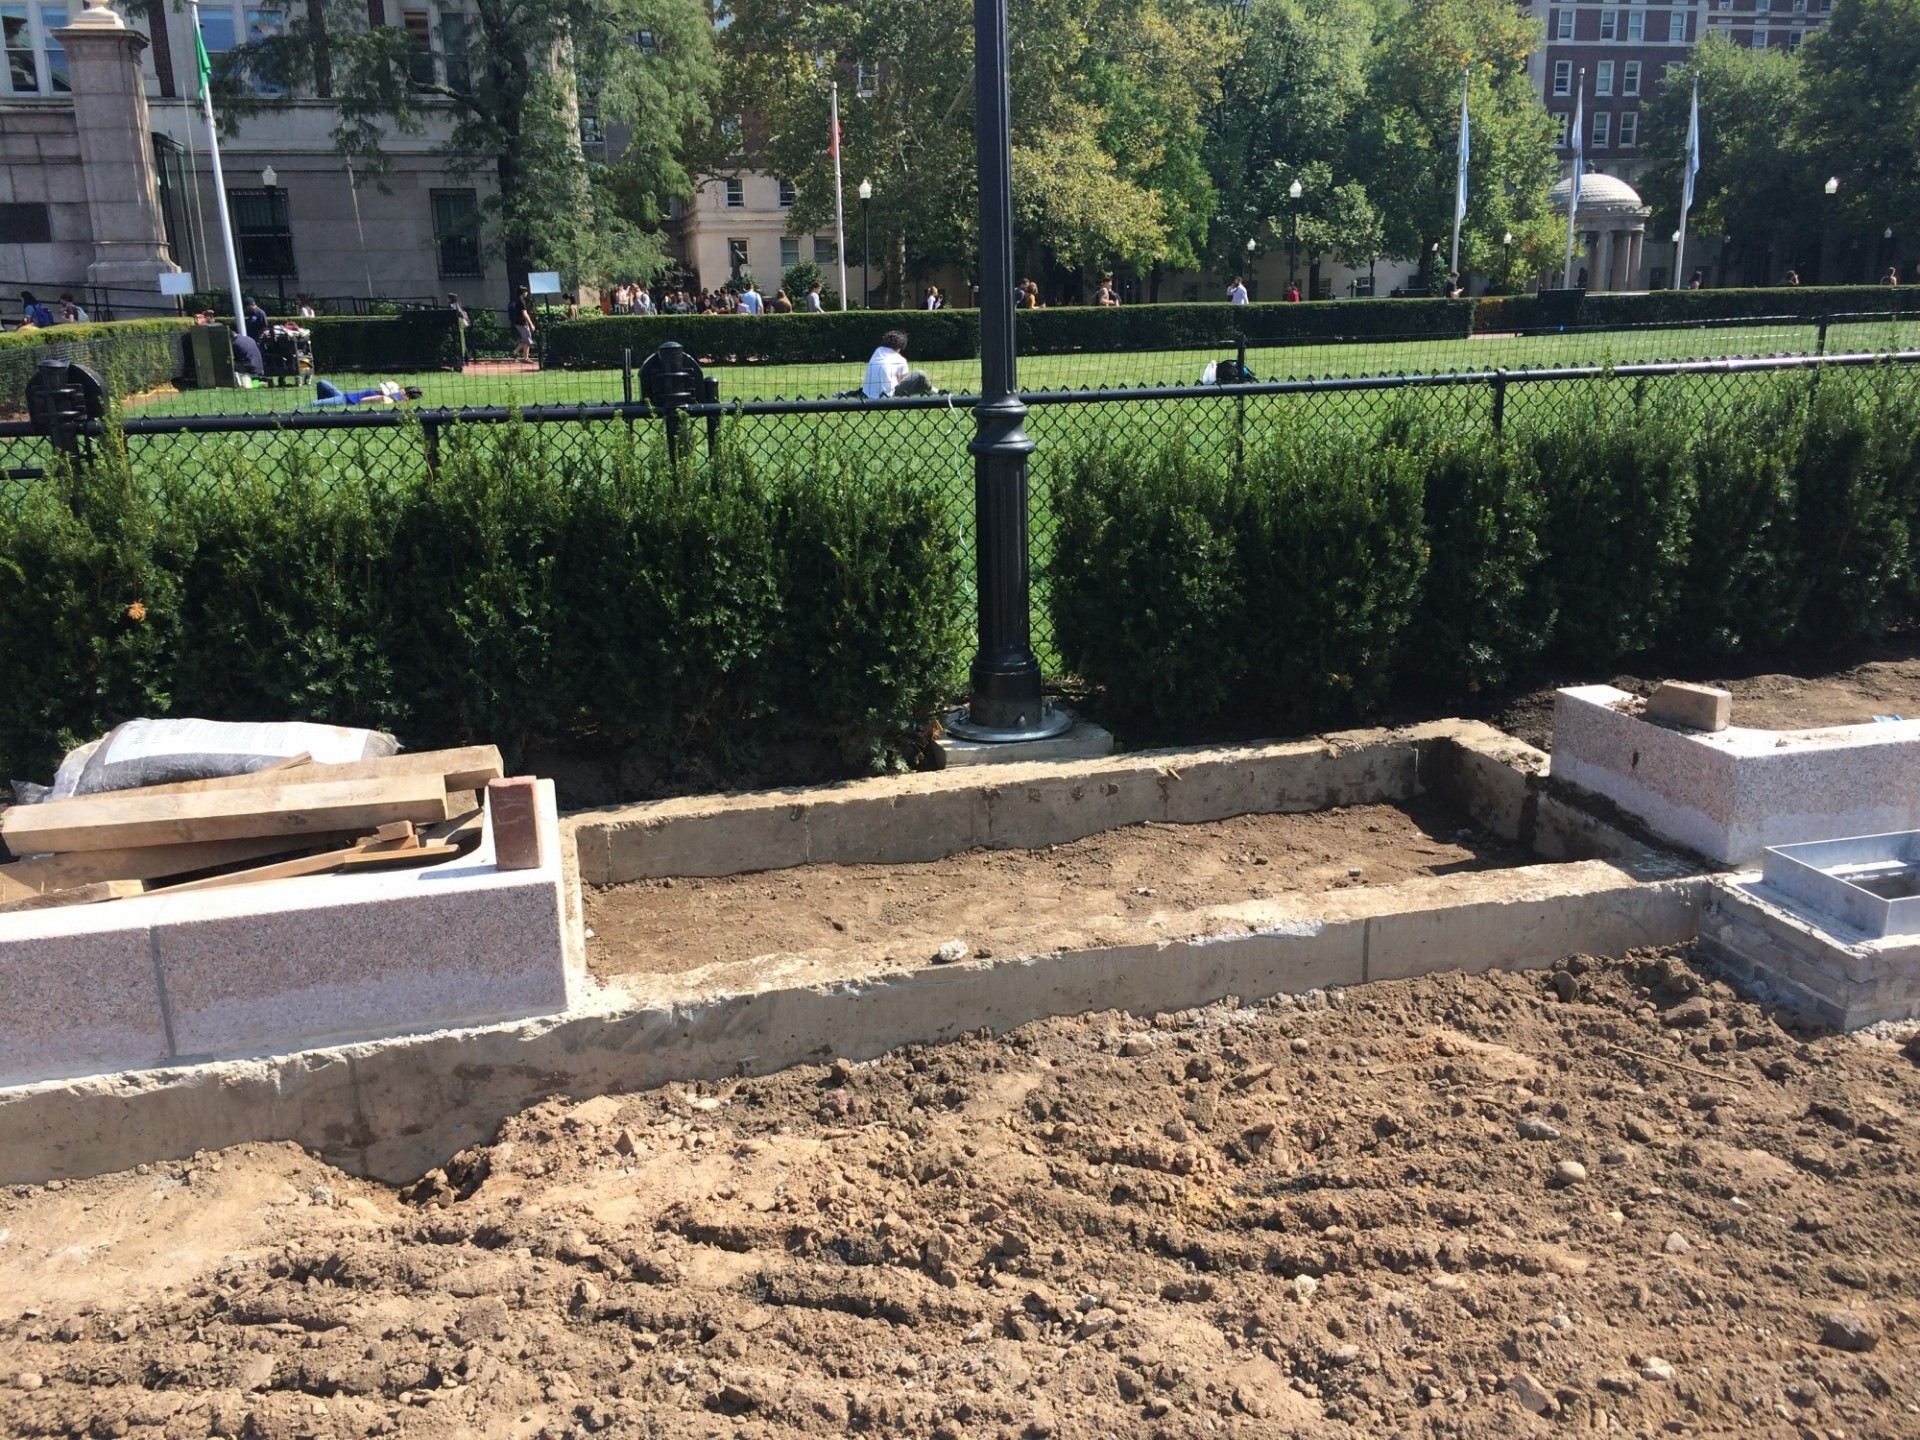 New benches will line the pathways along the perimeter of Butler Lawn. The area for a bench can be seen in this photo in front of the lamppost. (Photo from September 11, 2017)